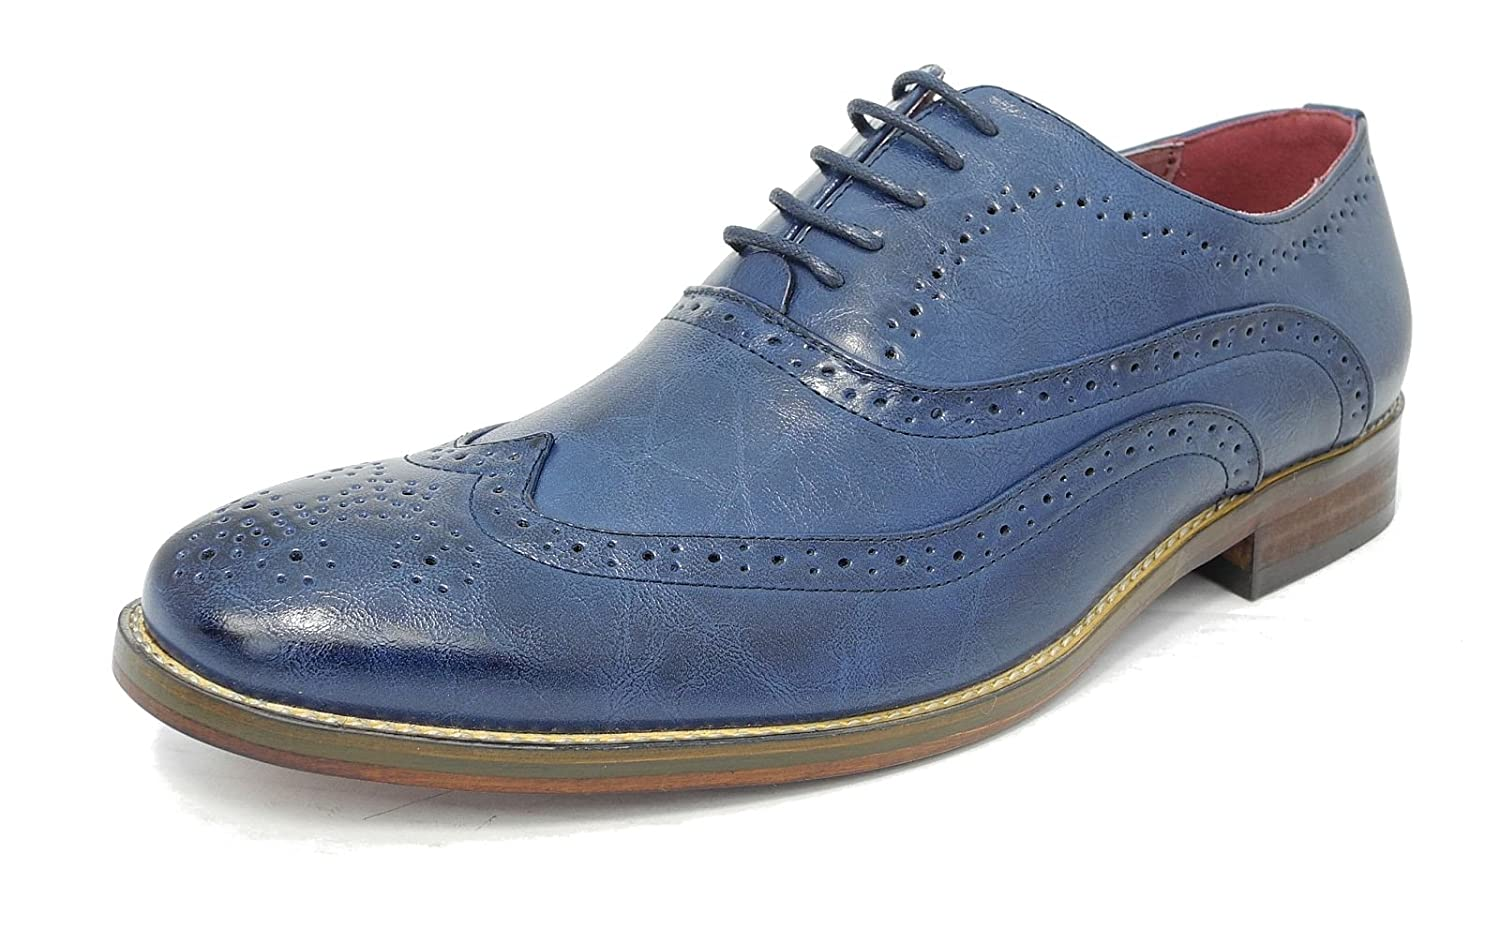 details for shop best sellers crazy price Mens Leather Lined Smart Lace Up Oxford Brogues Shoes Aegean Blue ...